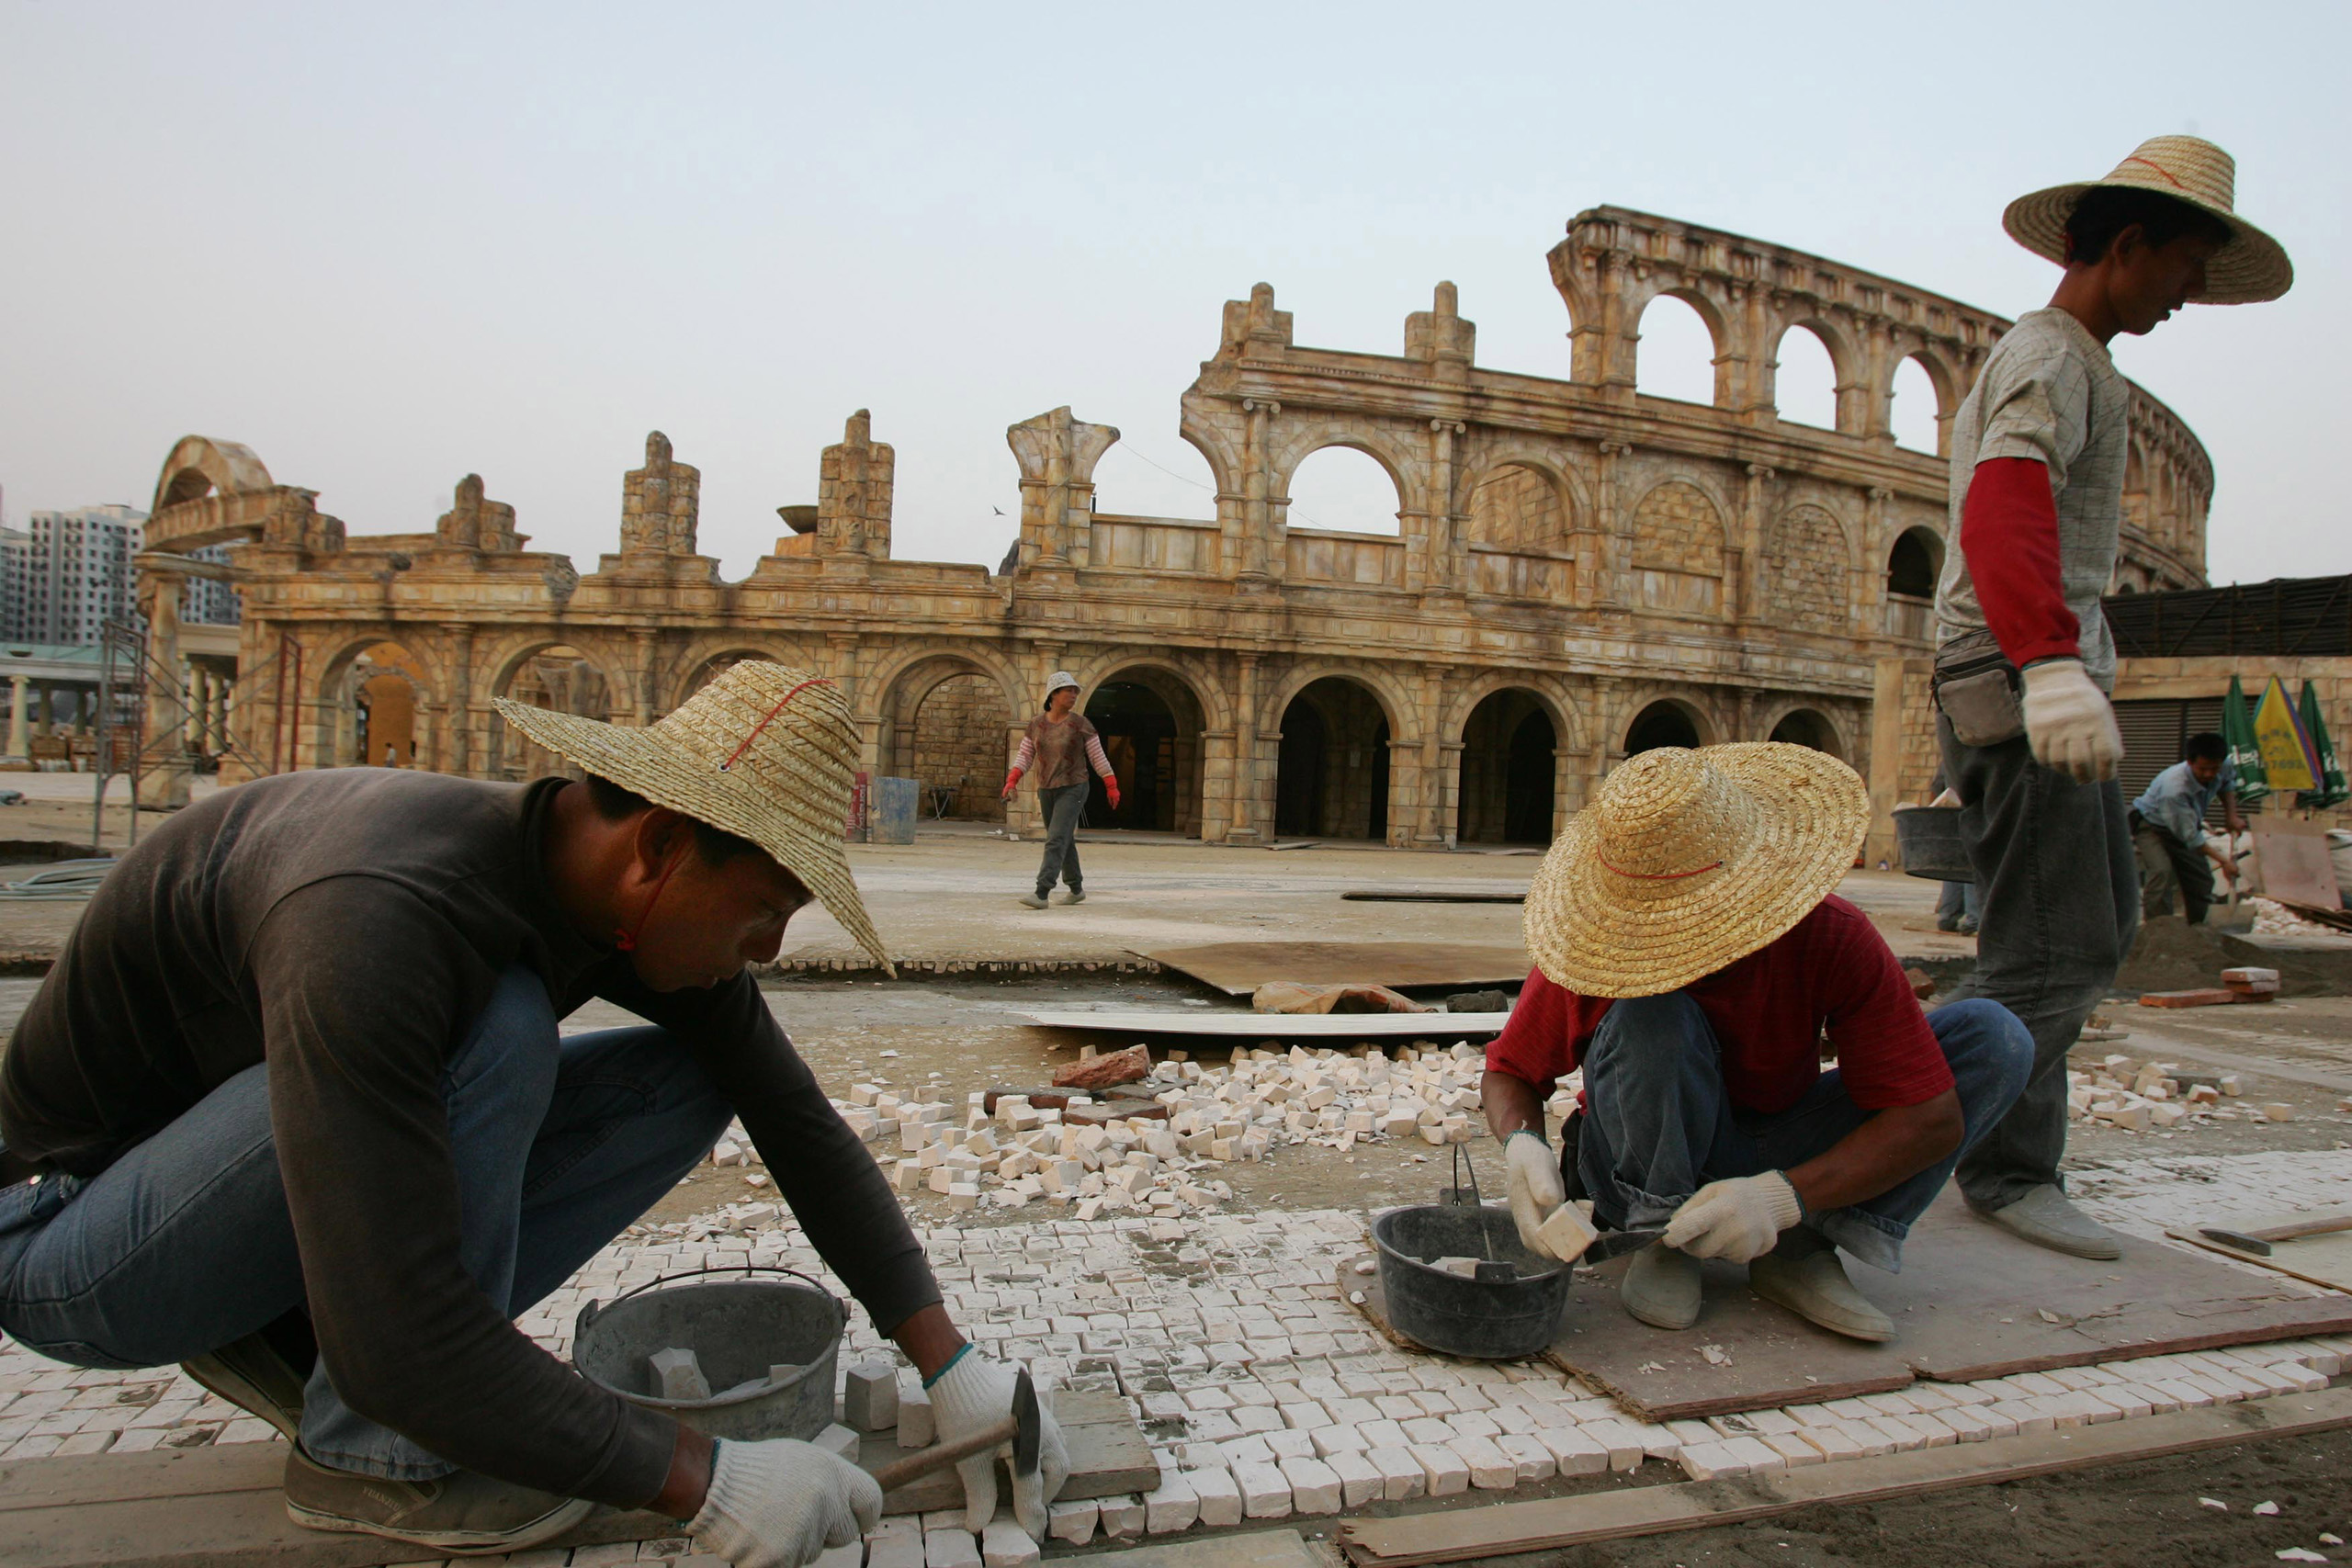 Workers build pavement outside a replica of the Roman Colosseum at Fisherman's Wharf in Macau.